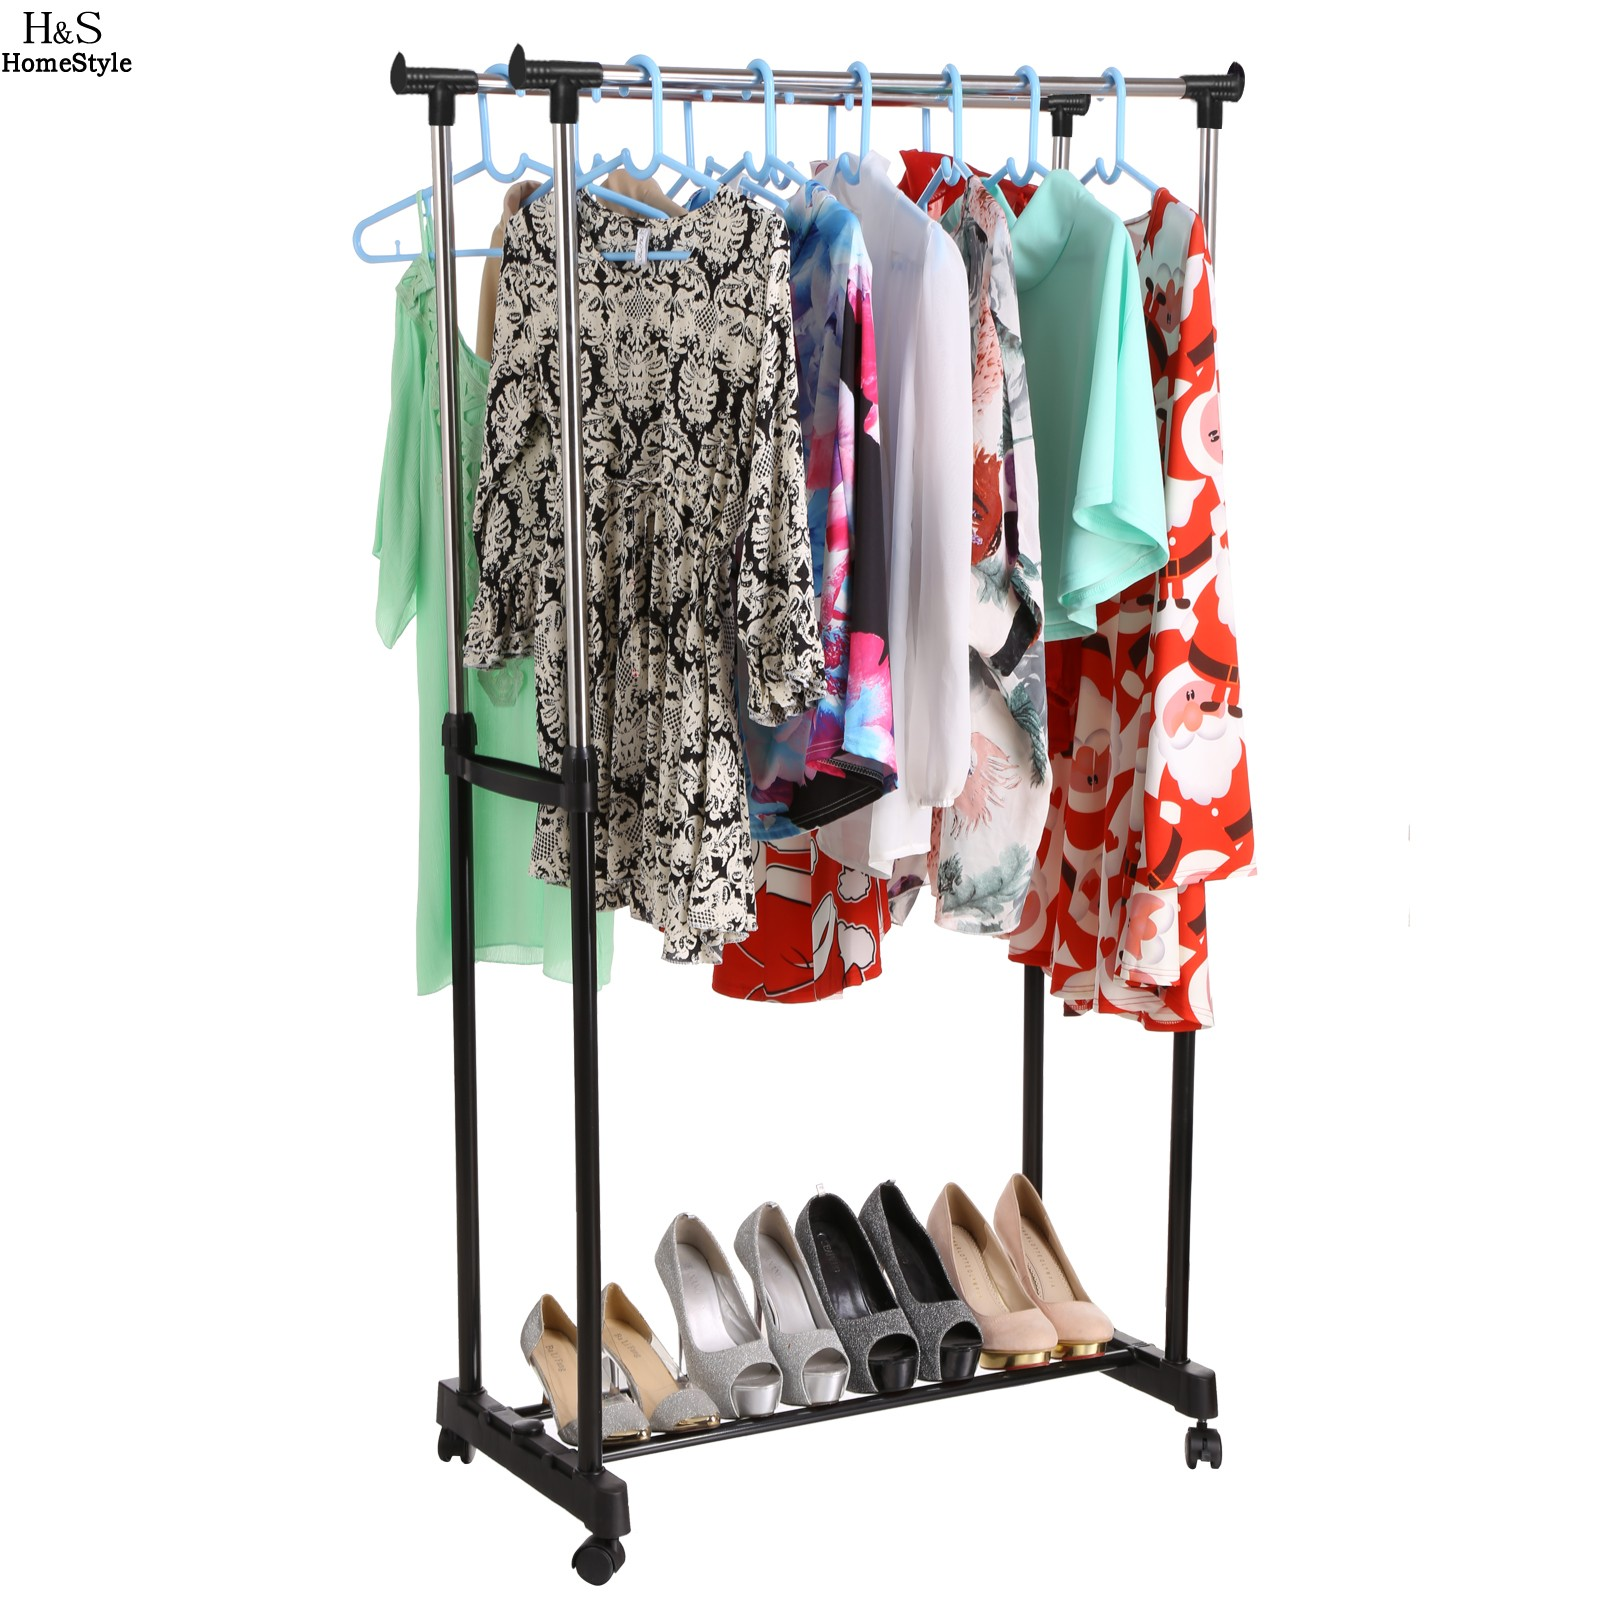 hanging dandylione diy clothes rack dsc